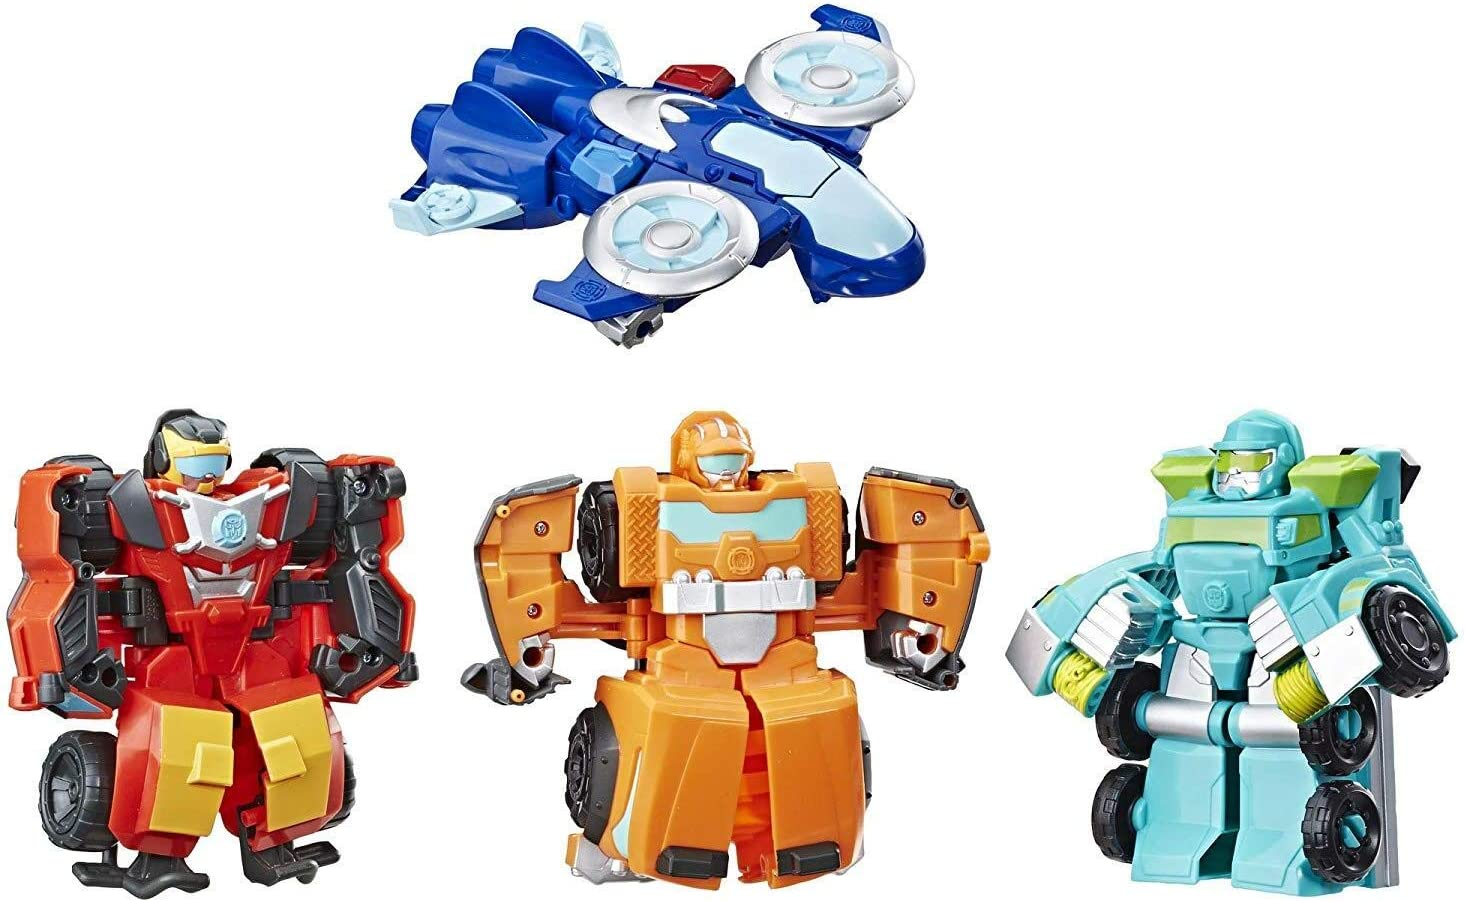 "Playskool Heroes Transformers Rescue Bots Academy Rescue Team Pack, 4 Collectible 4.5"" Converting Action Figures, Toys for Kids Ages 3 & Up, Brown (E5099)"